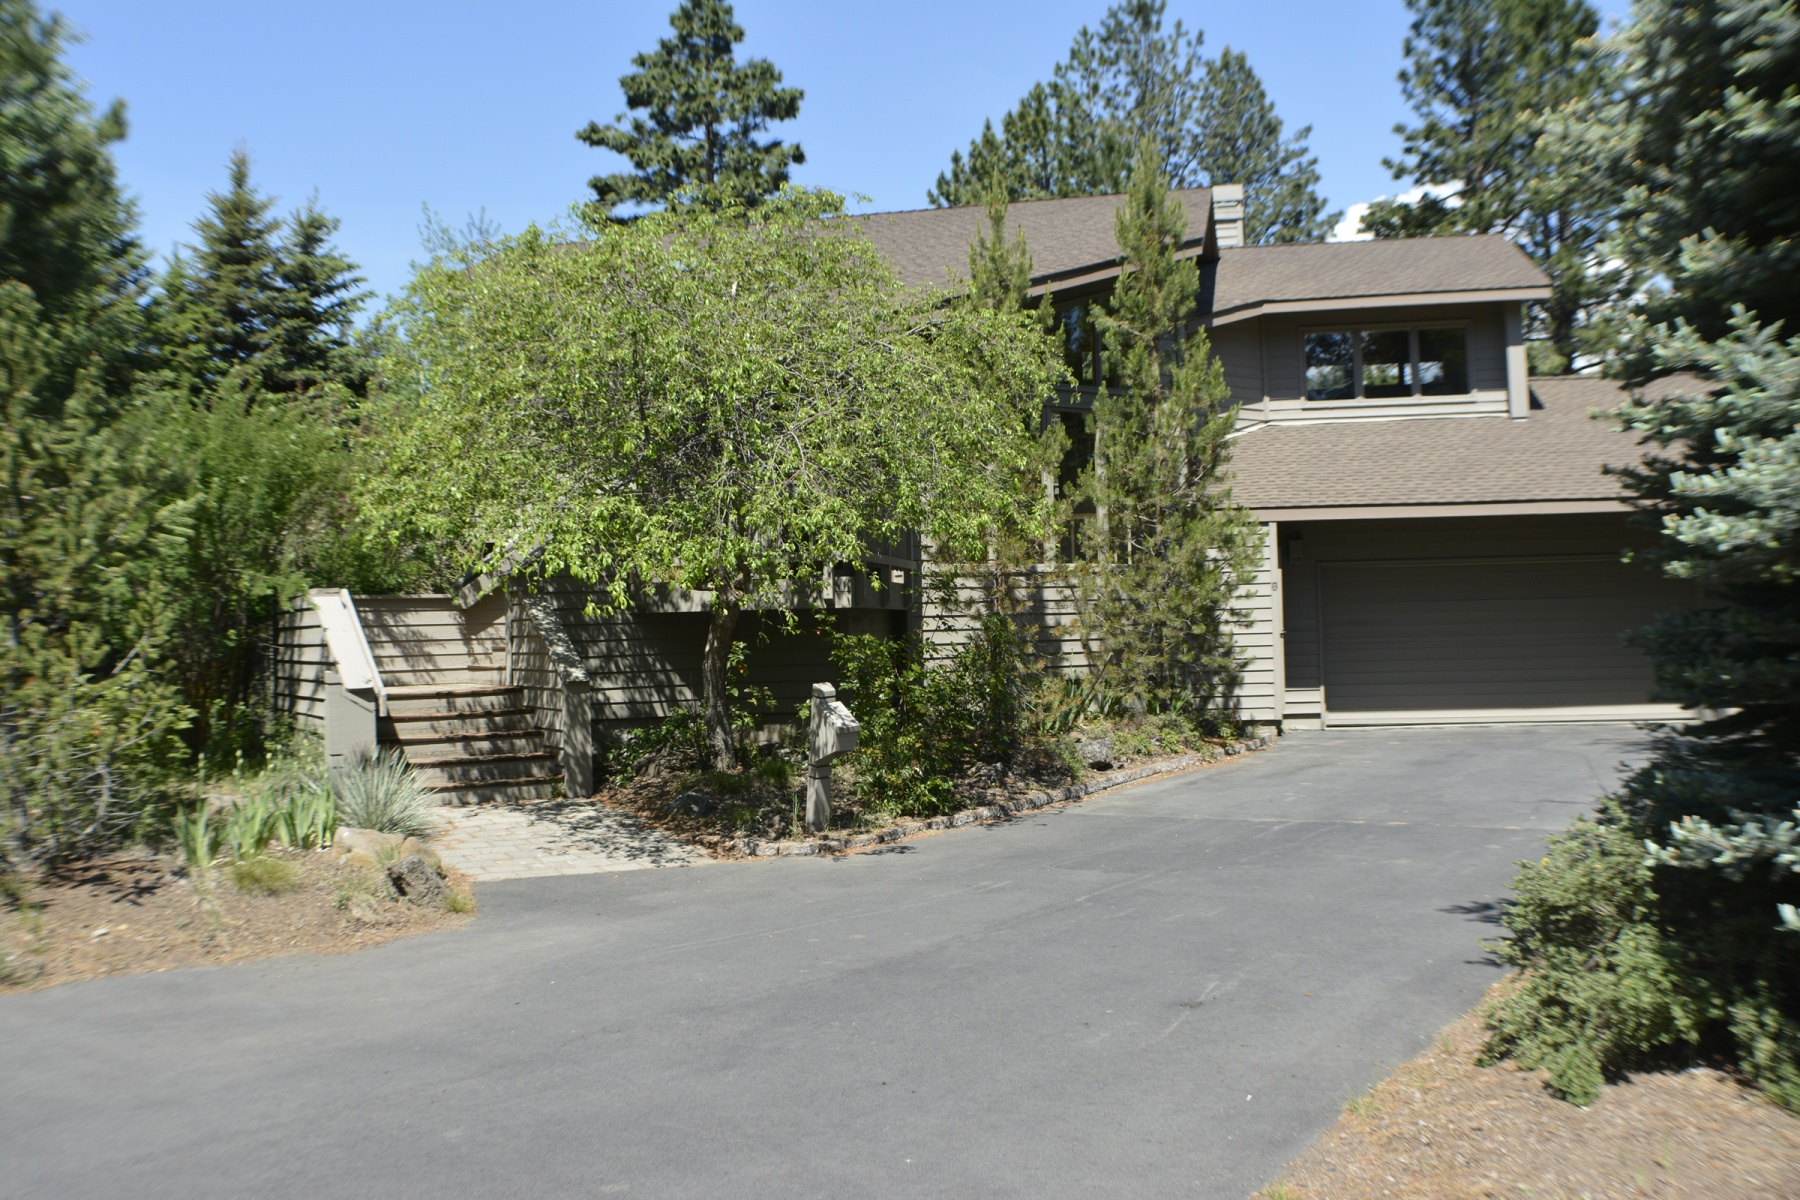 Single Family Home for Sale at 3 Playoff Lane, SUNRIVER 3 Playoff Ln Sunriver, Oregon, 97707 United States